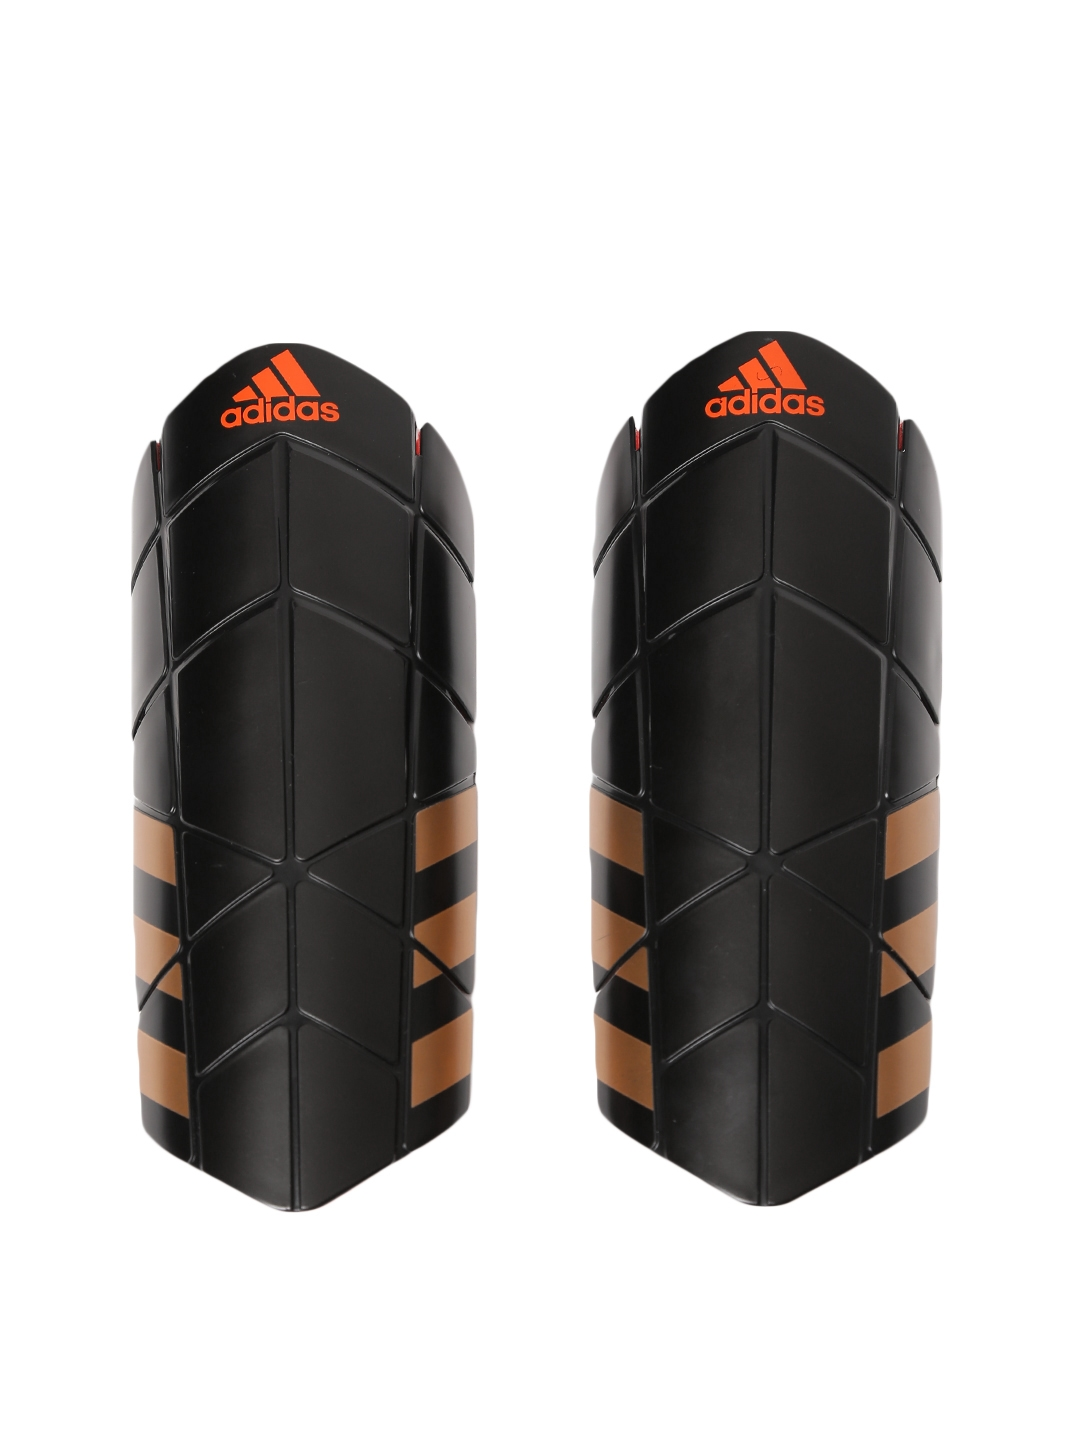 24d95d8eec93 Buy ADIDAS Unisex Black Ghost Pro Shin Guards - Sports Accessories ...